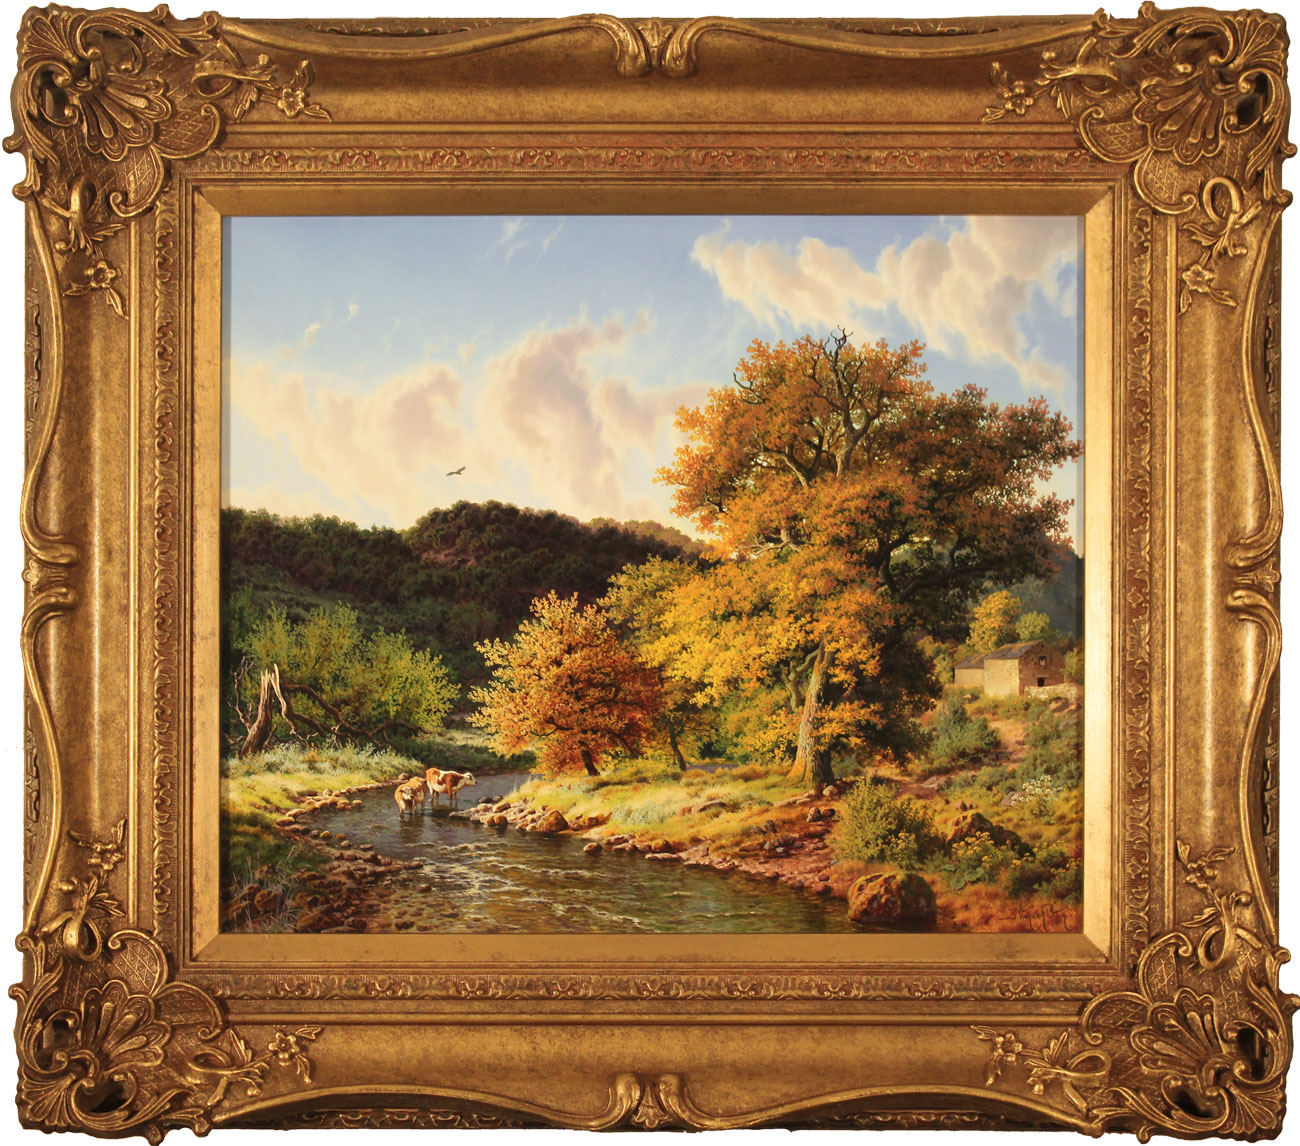 Daniel Van Der Putten, Original oil painting on panel, Autumn, Crackpot, Swaledale, North Yorkshire Click to enlarge